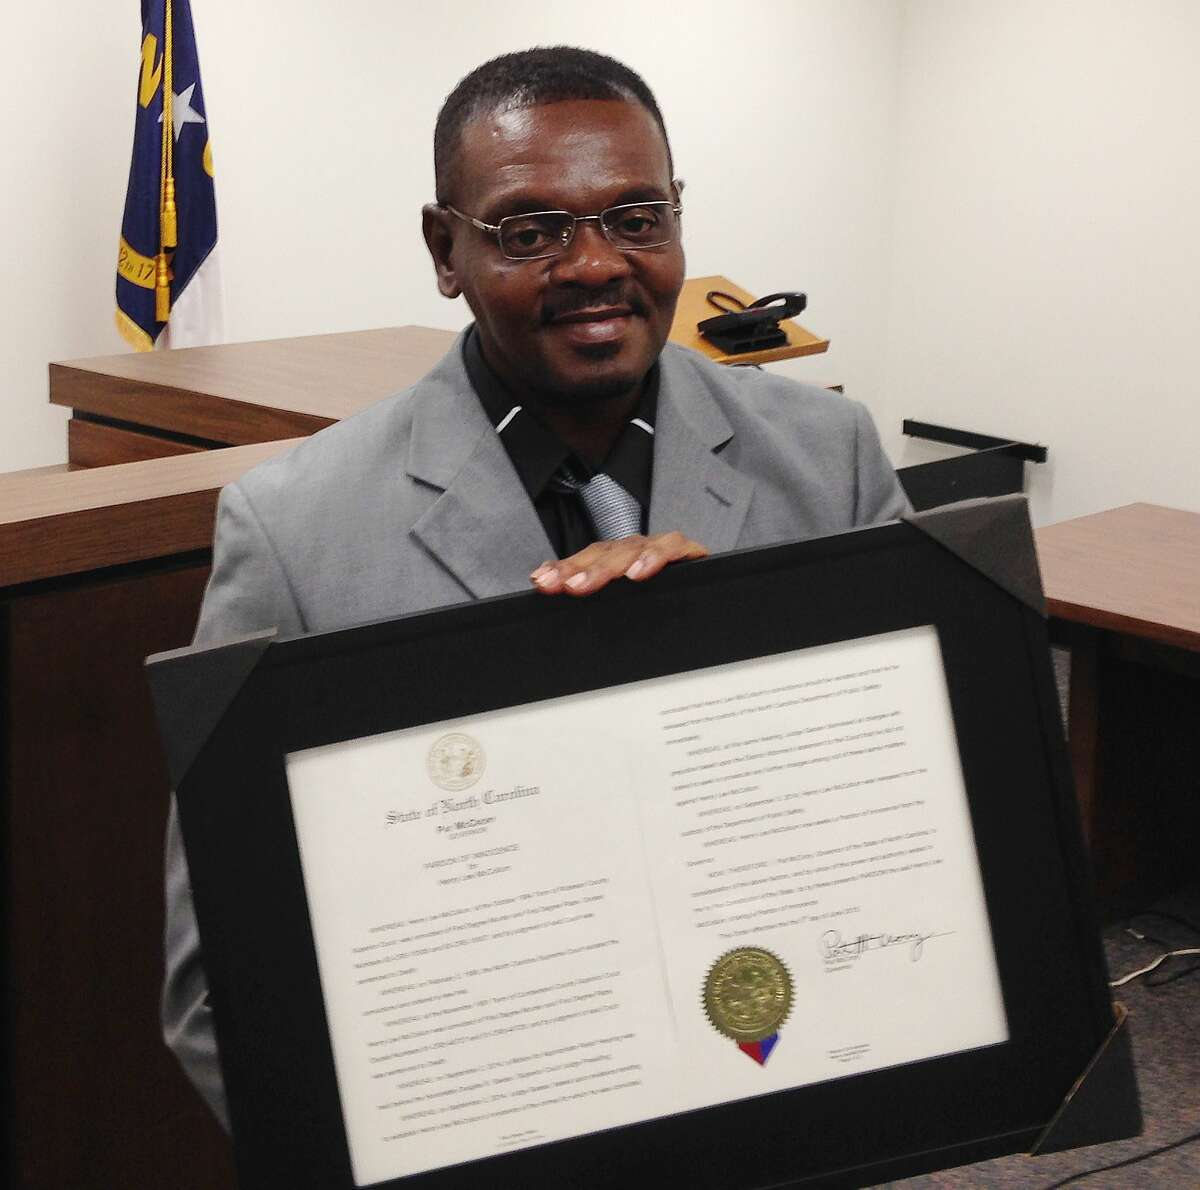 Henry McCollum holds a framed copy of his pardon before a hearing on compensation by the state for his wrongful conviction on Sept. 2, 2015, in Raleigh, N.C. McCollum was the state's longest-serving death row inmate when he was released in 2014 after three decades in prison for being wrongfully convicted in a girl's death.